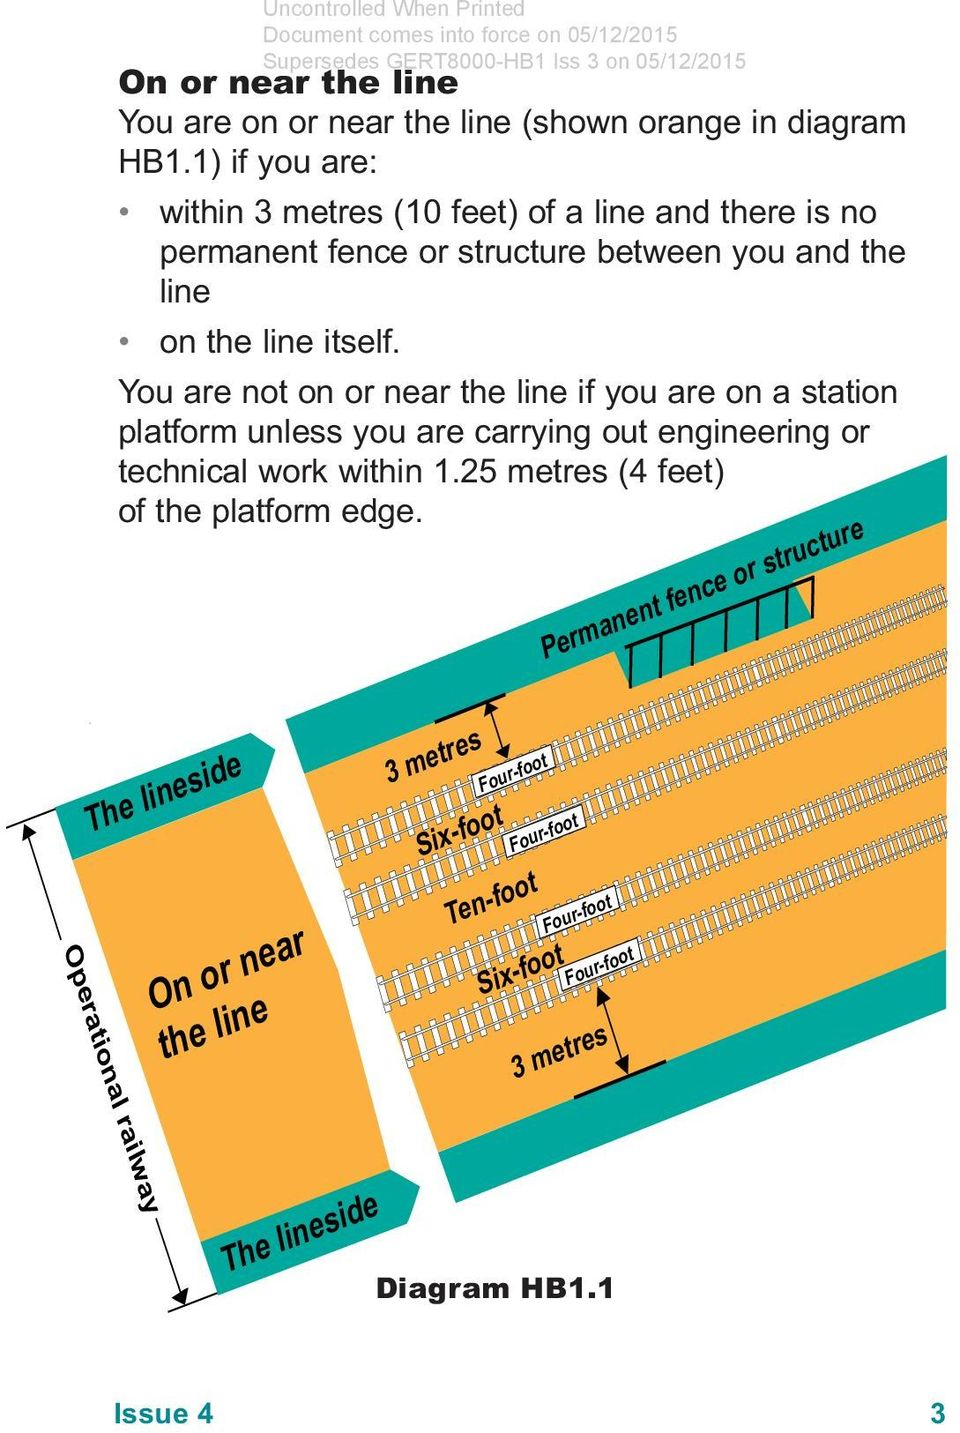 You are not on or near the line if you are on a station platform unless you are carrying out engineering or technical work within 1.